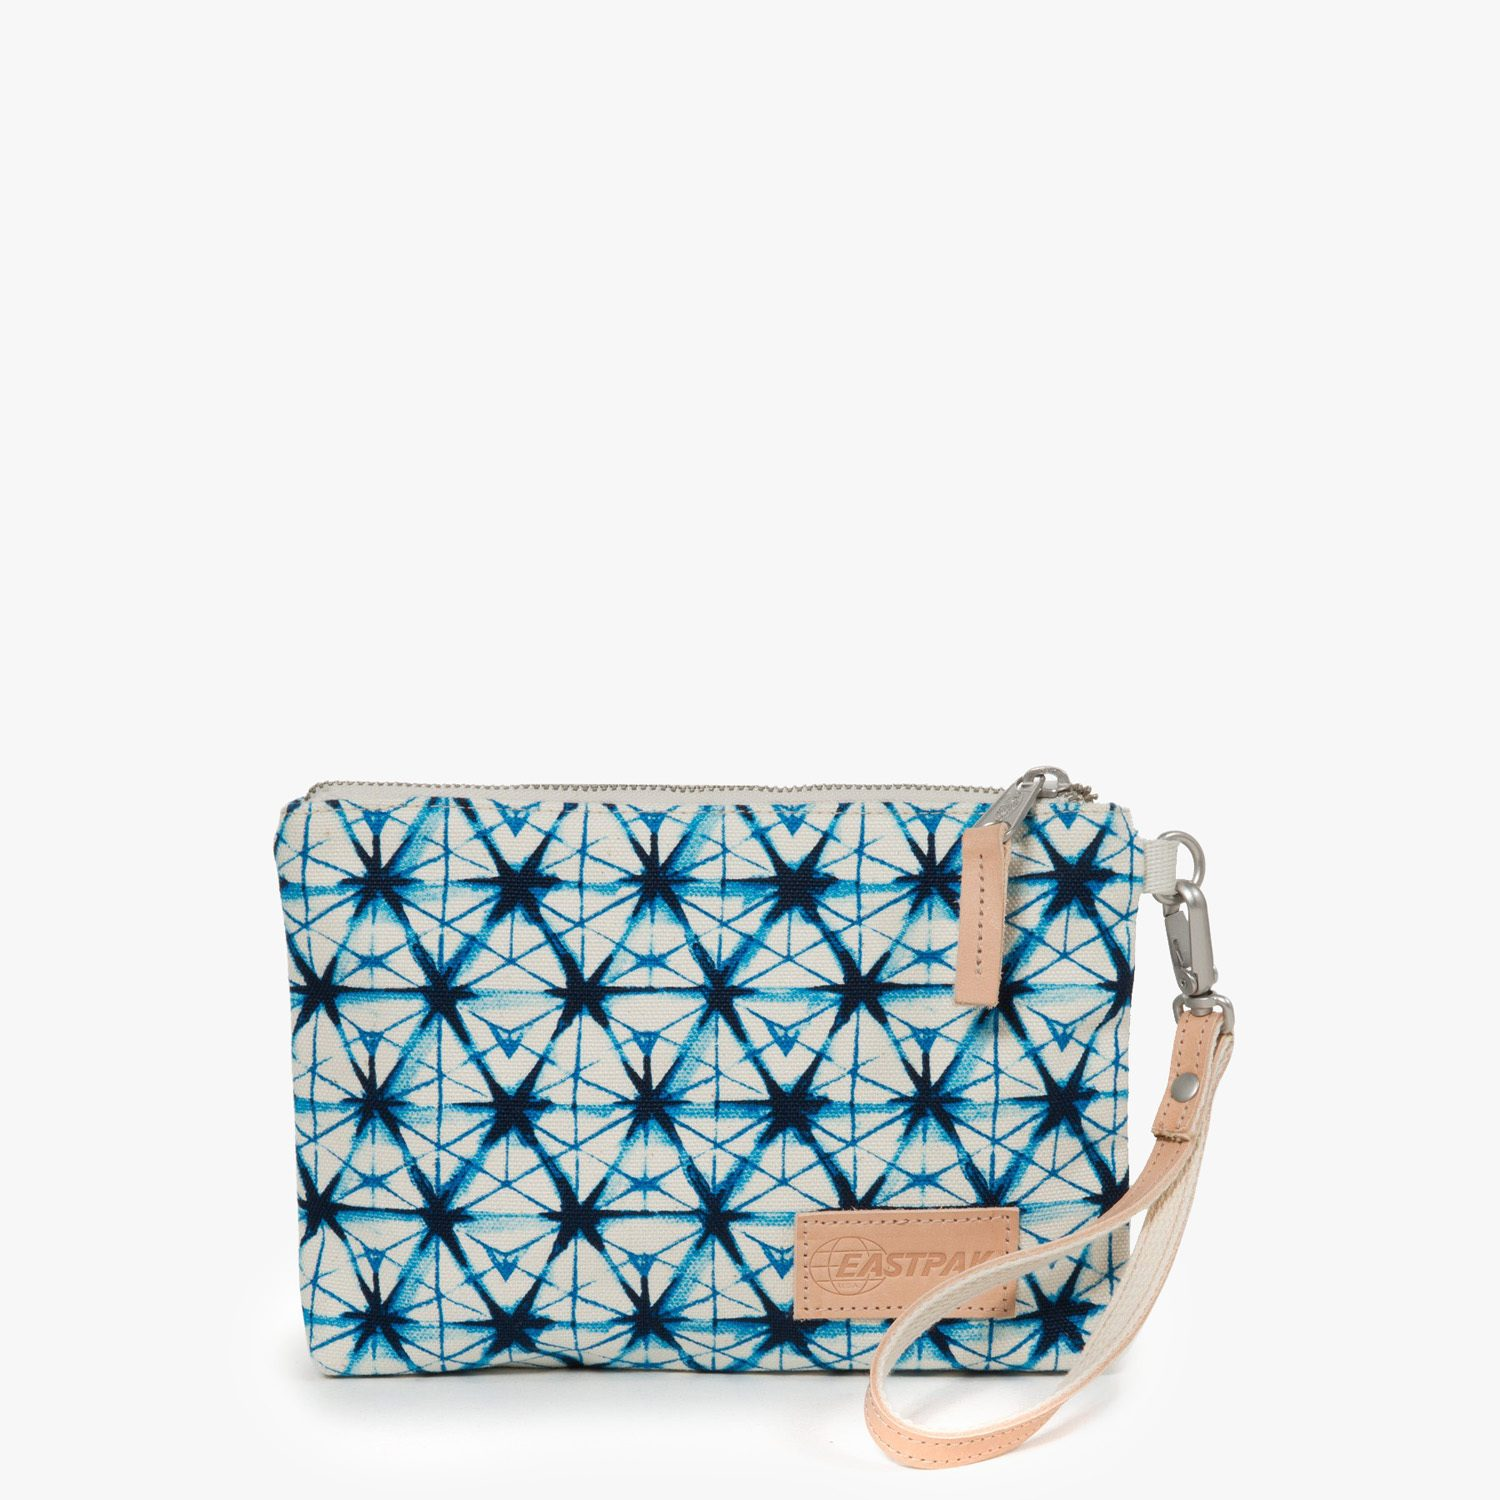 Eastpak Chassidy